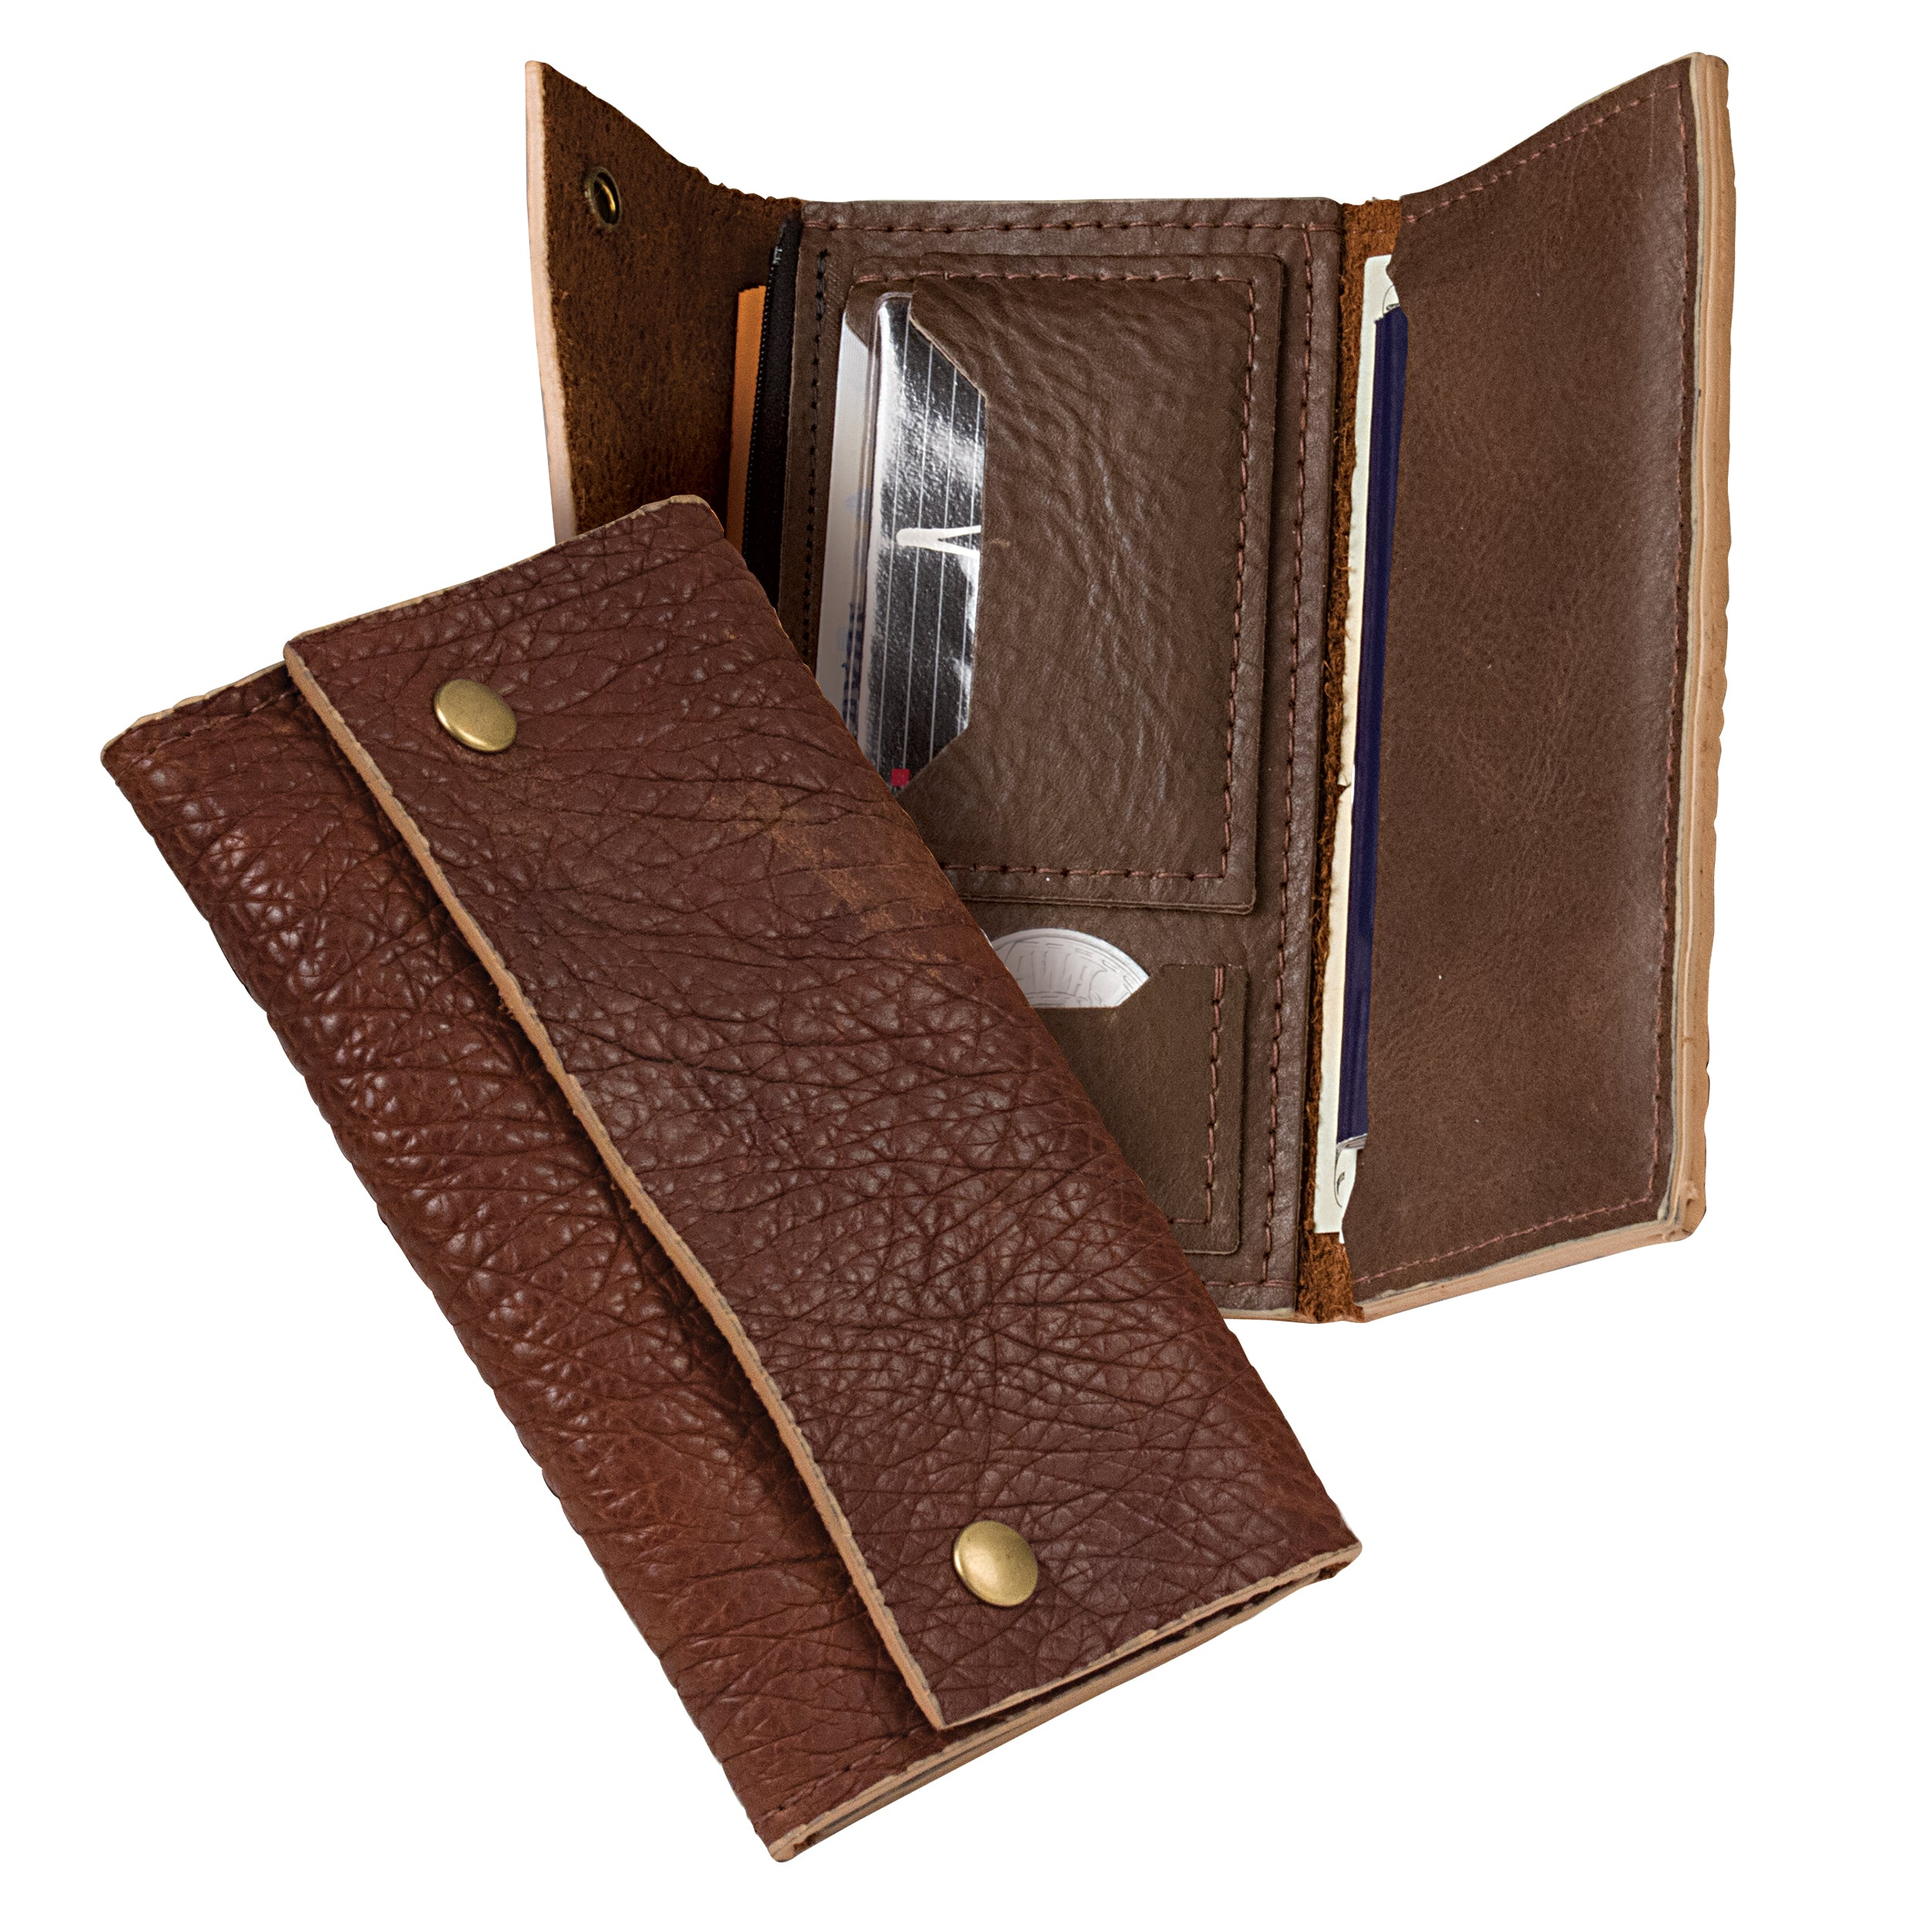 Bison Surveyor Wallet Leather Only - 10 Pack